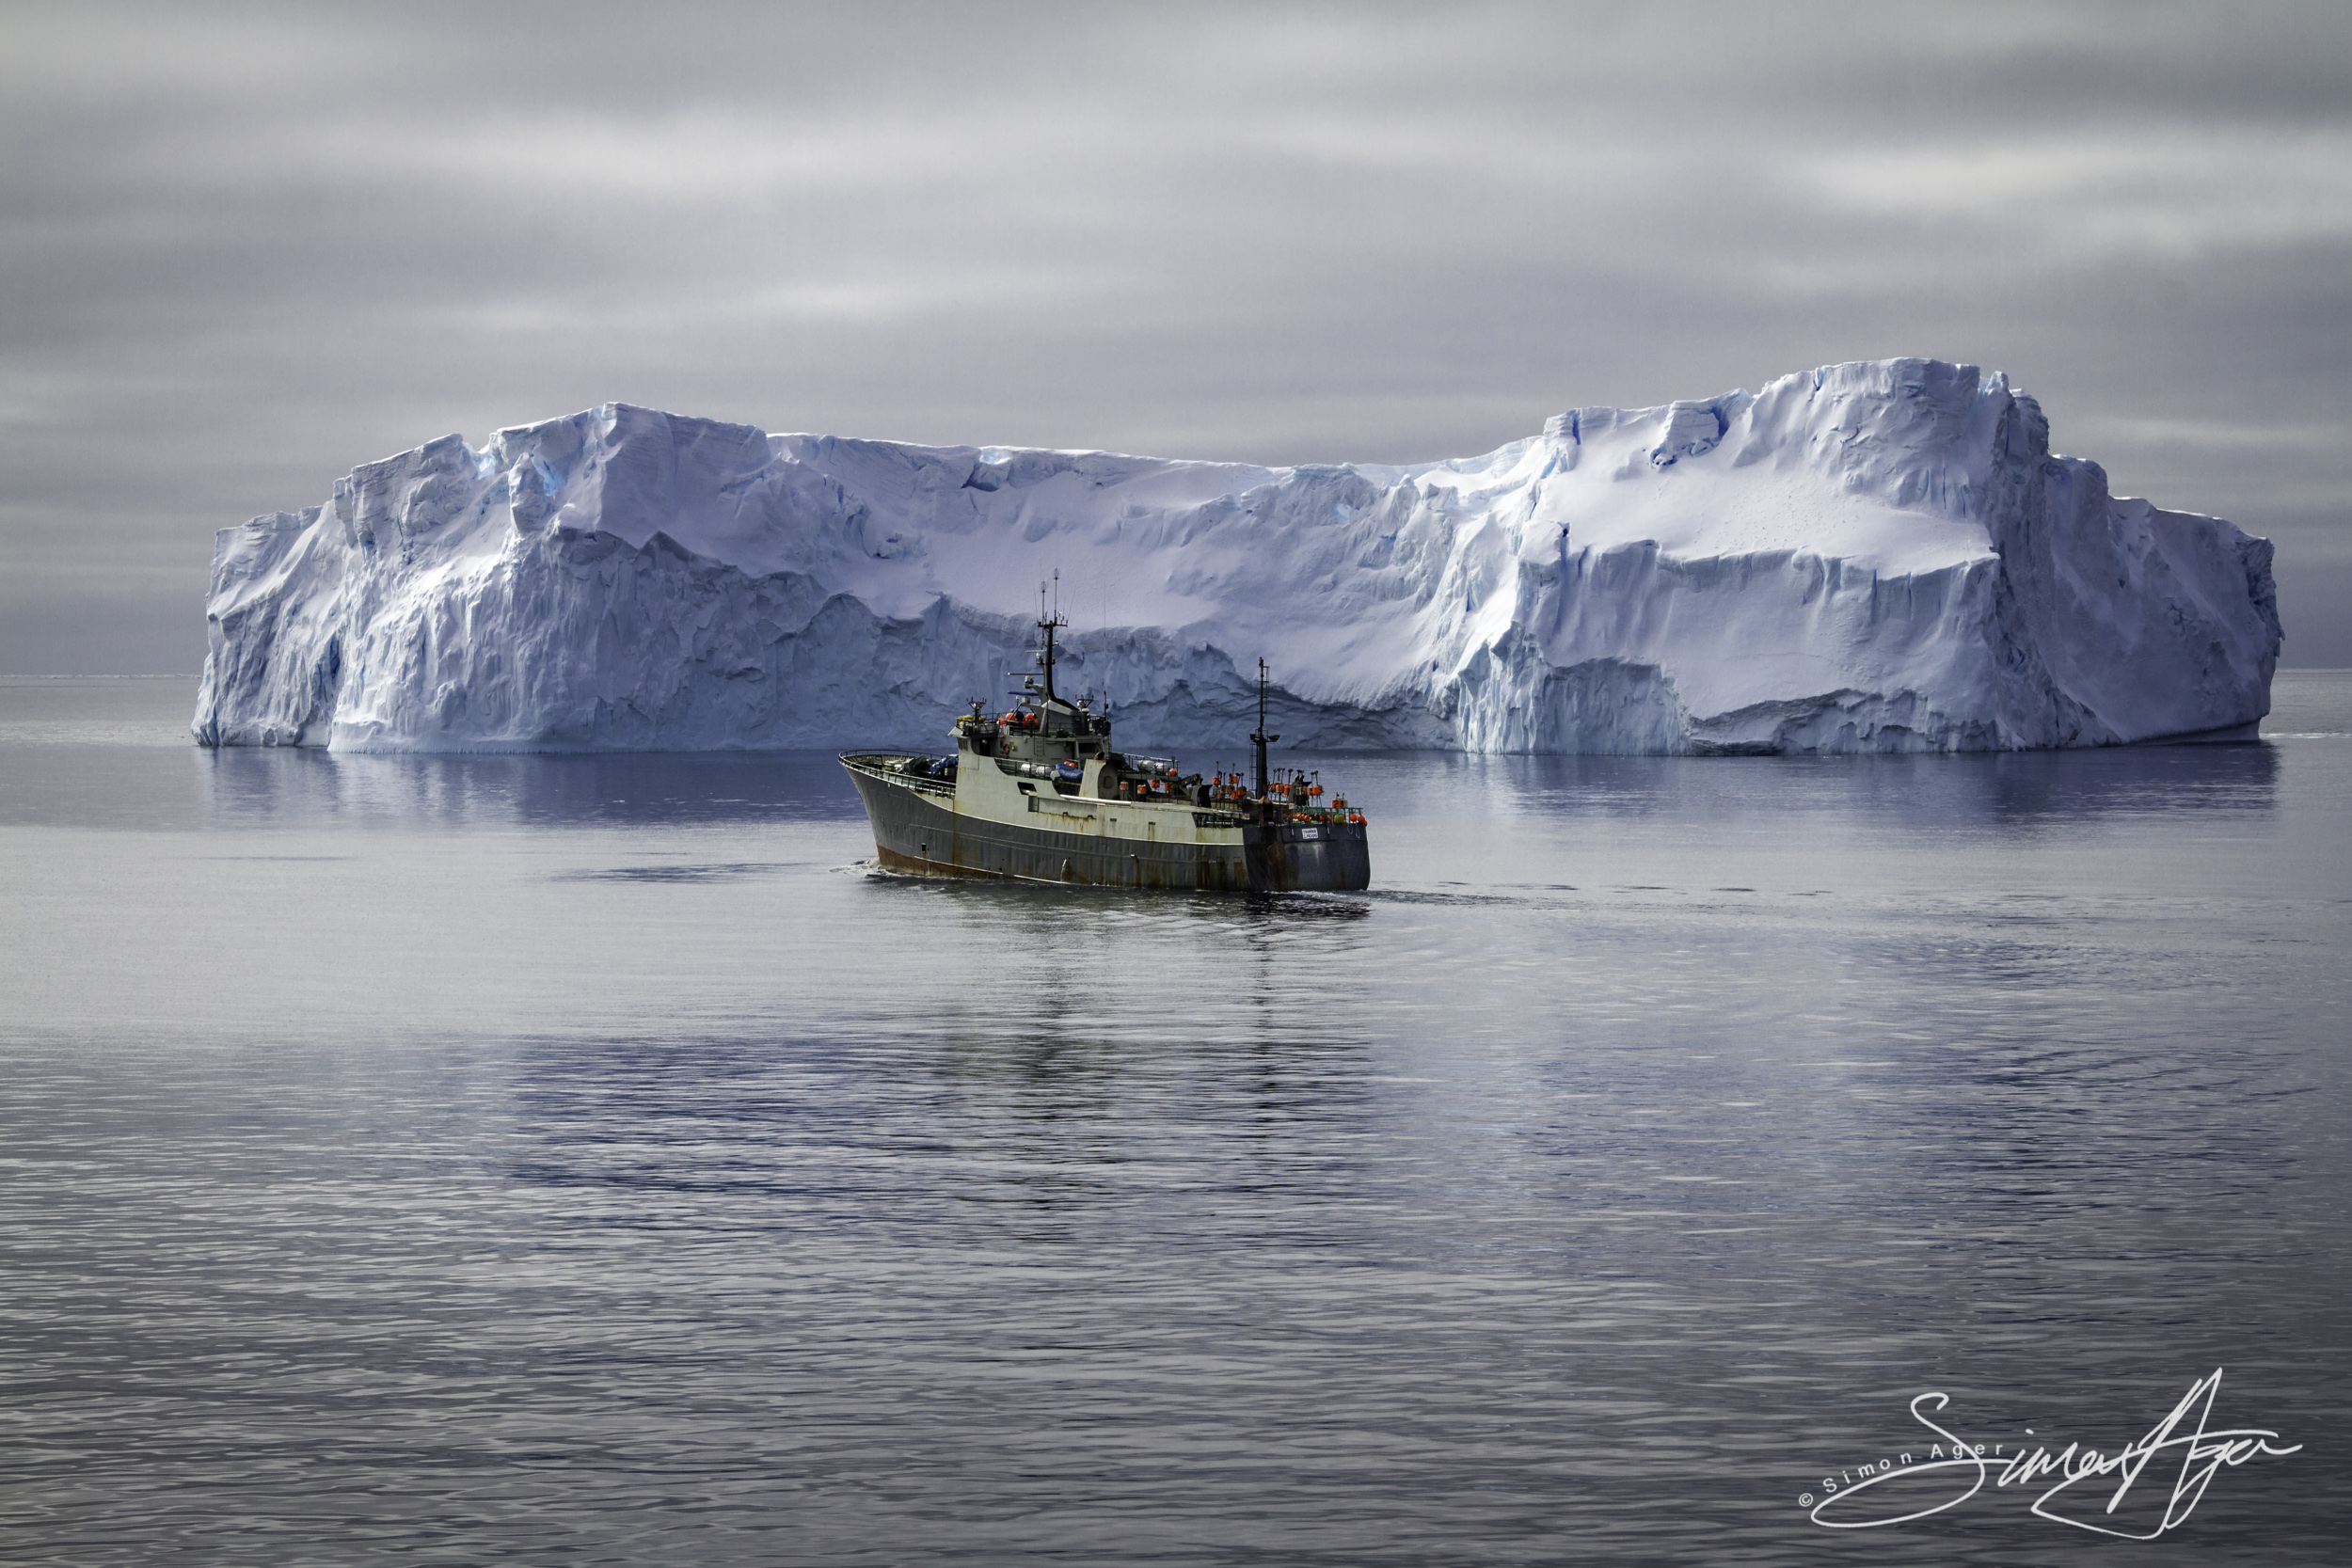 141218-SA-Bob-Barker-pursues-poaching-vessel-Thunder-towards-icebergs-0223